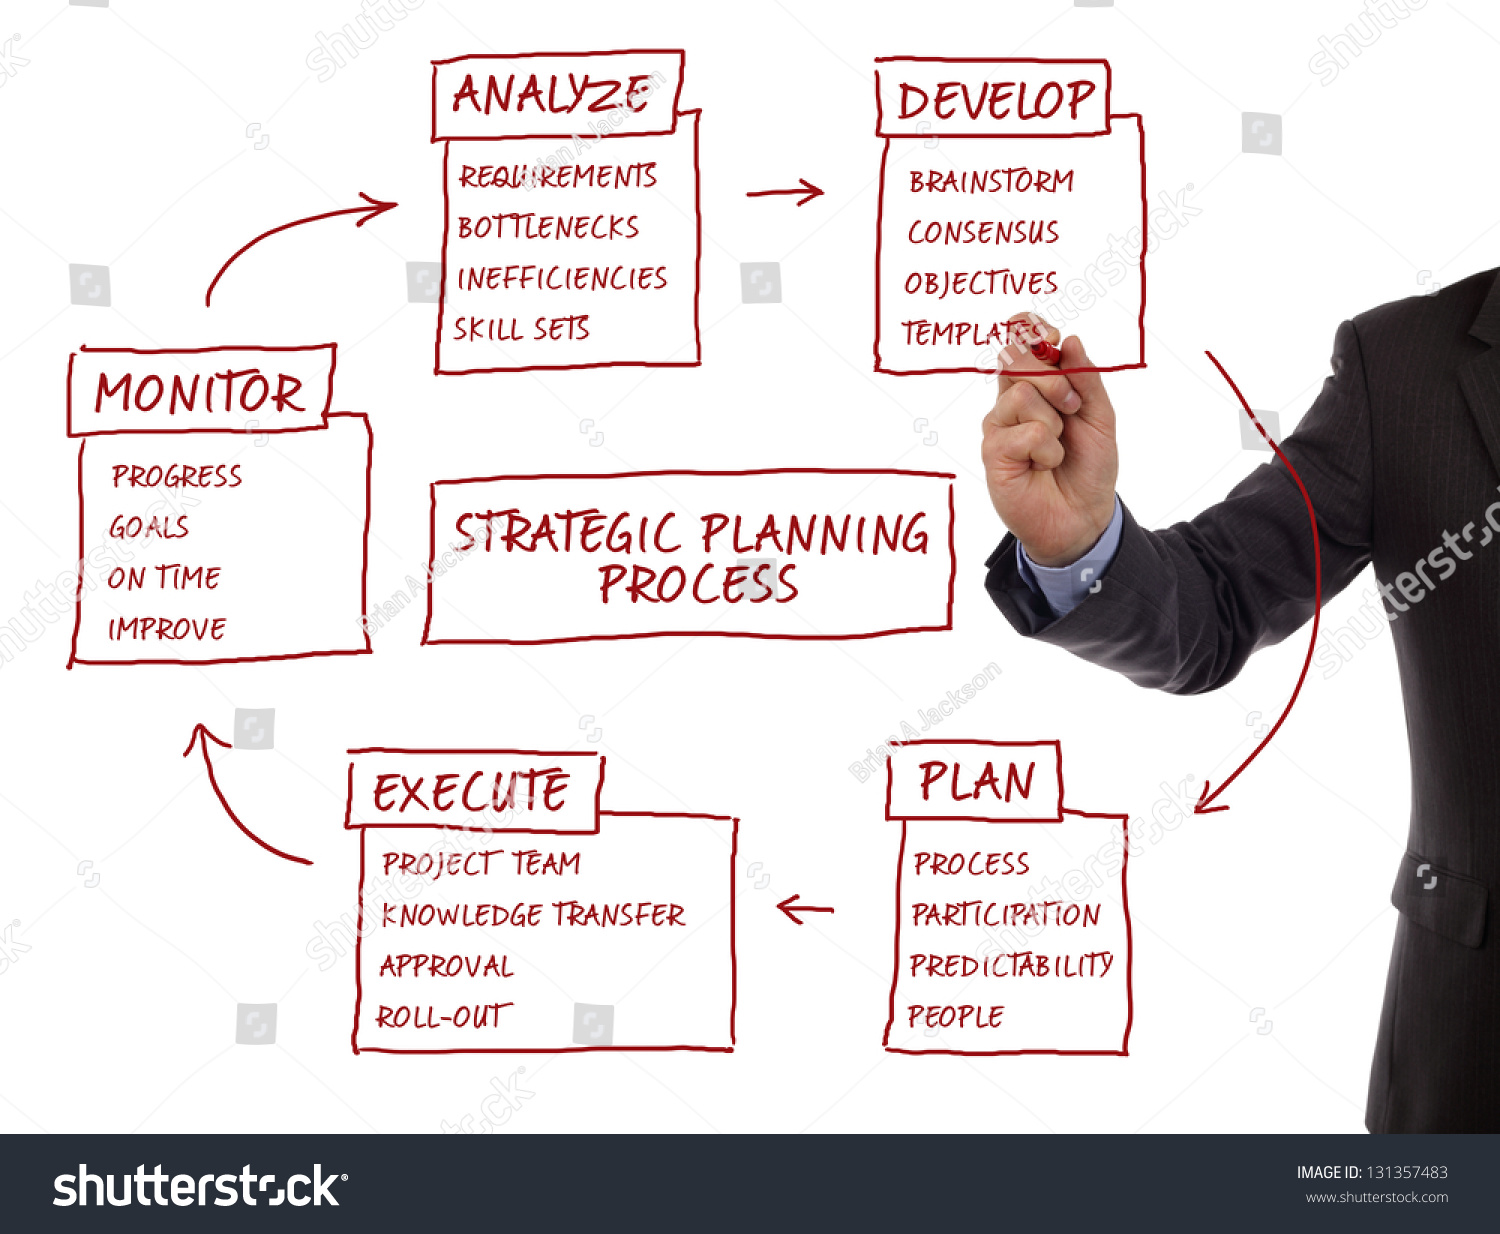 Strategy management planning process flow chart showing key business terms  analyze, develop, plan,